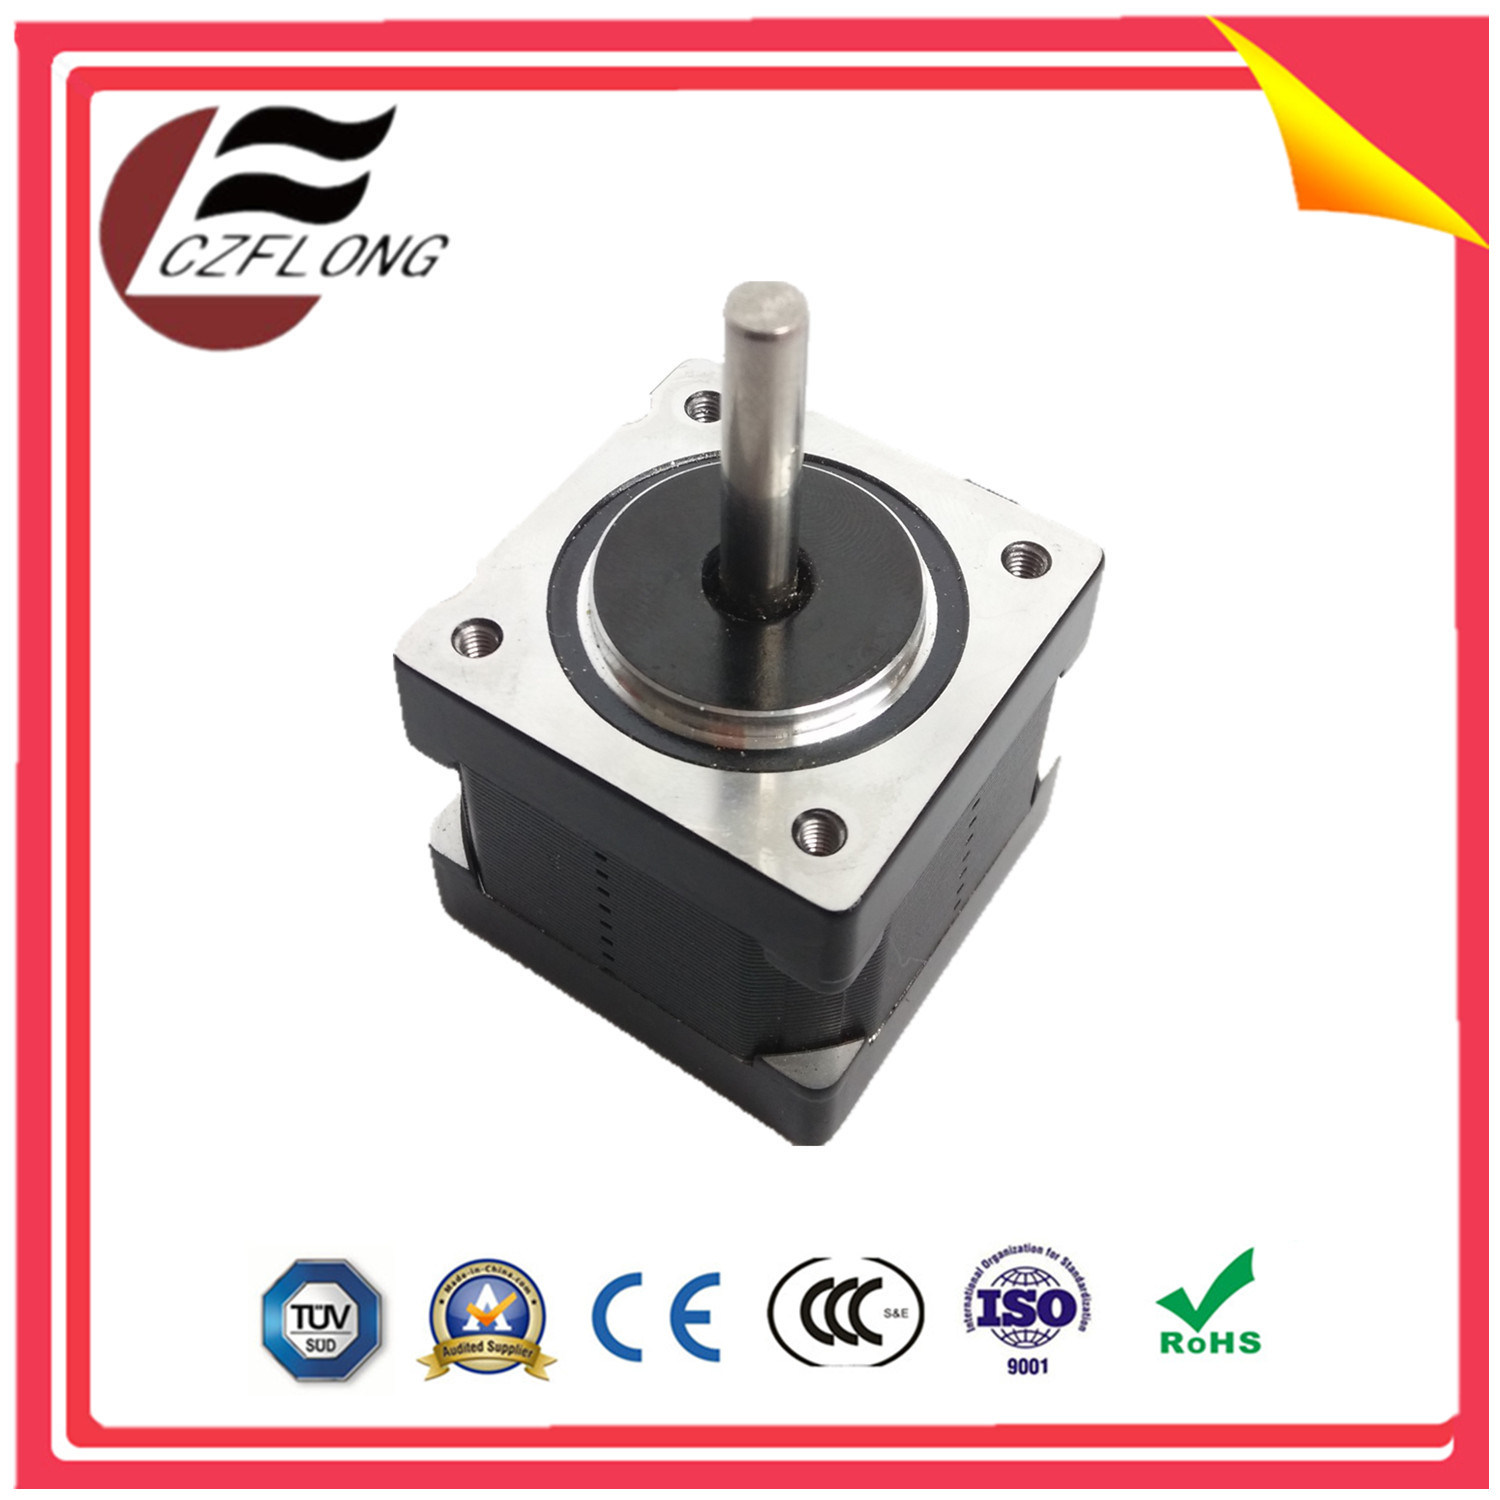 China Small Vibration 2 Phase Stepping Servo Brushless Motor With Wiring Wires Stepper Micro